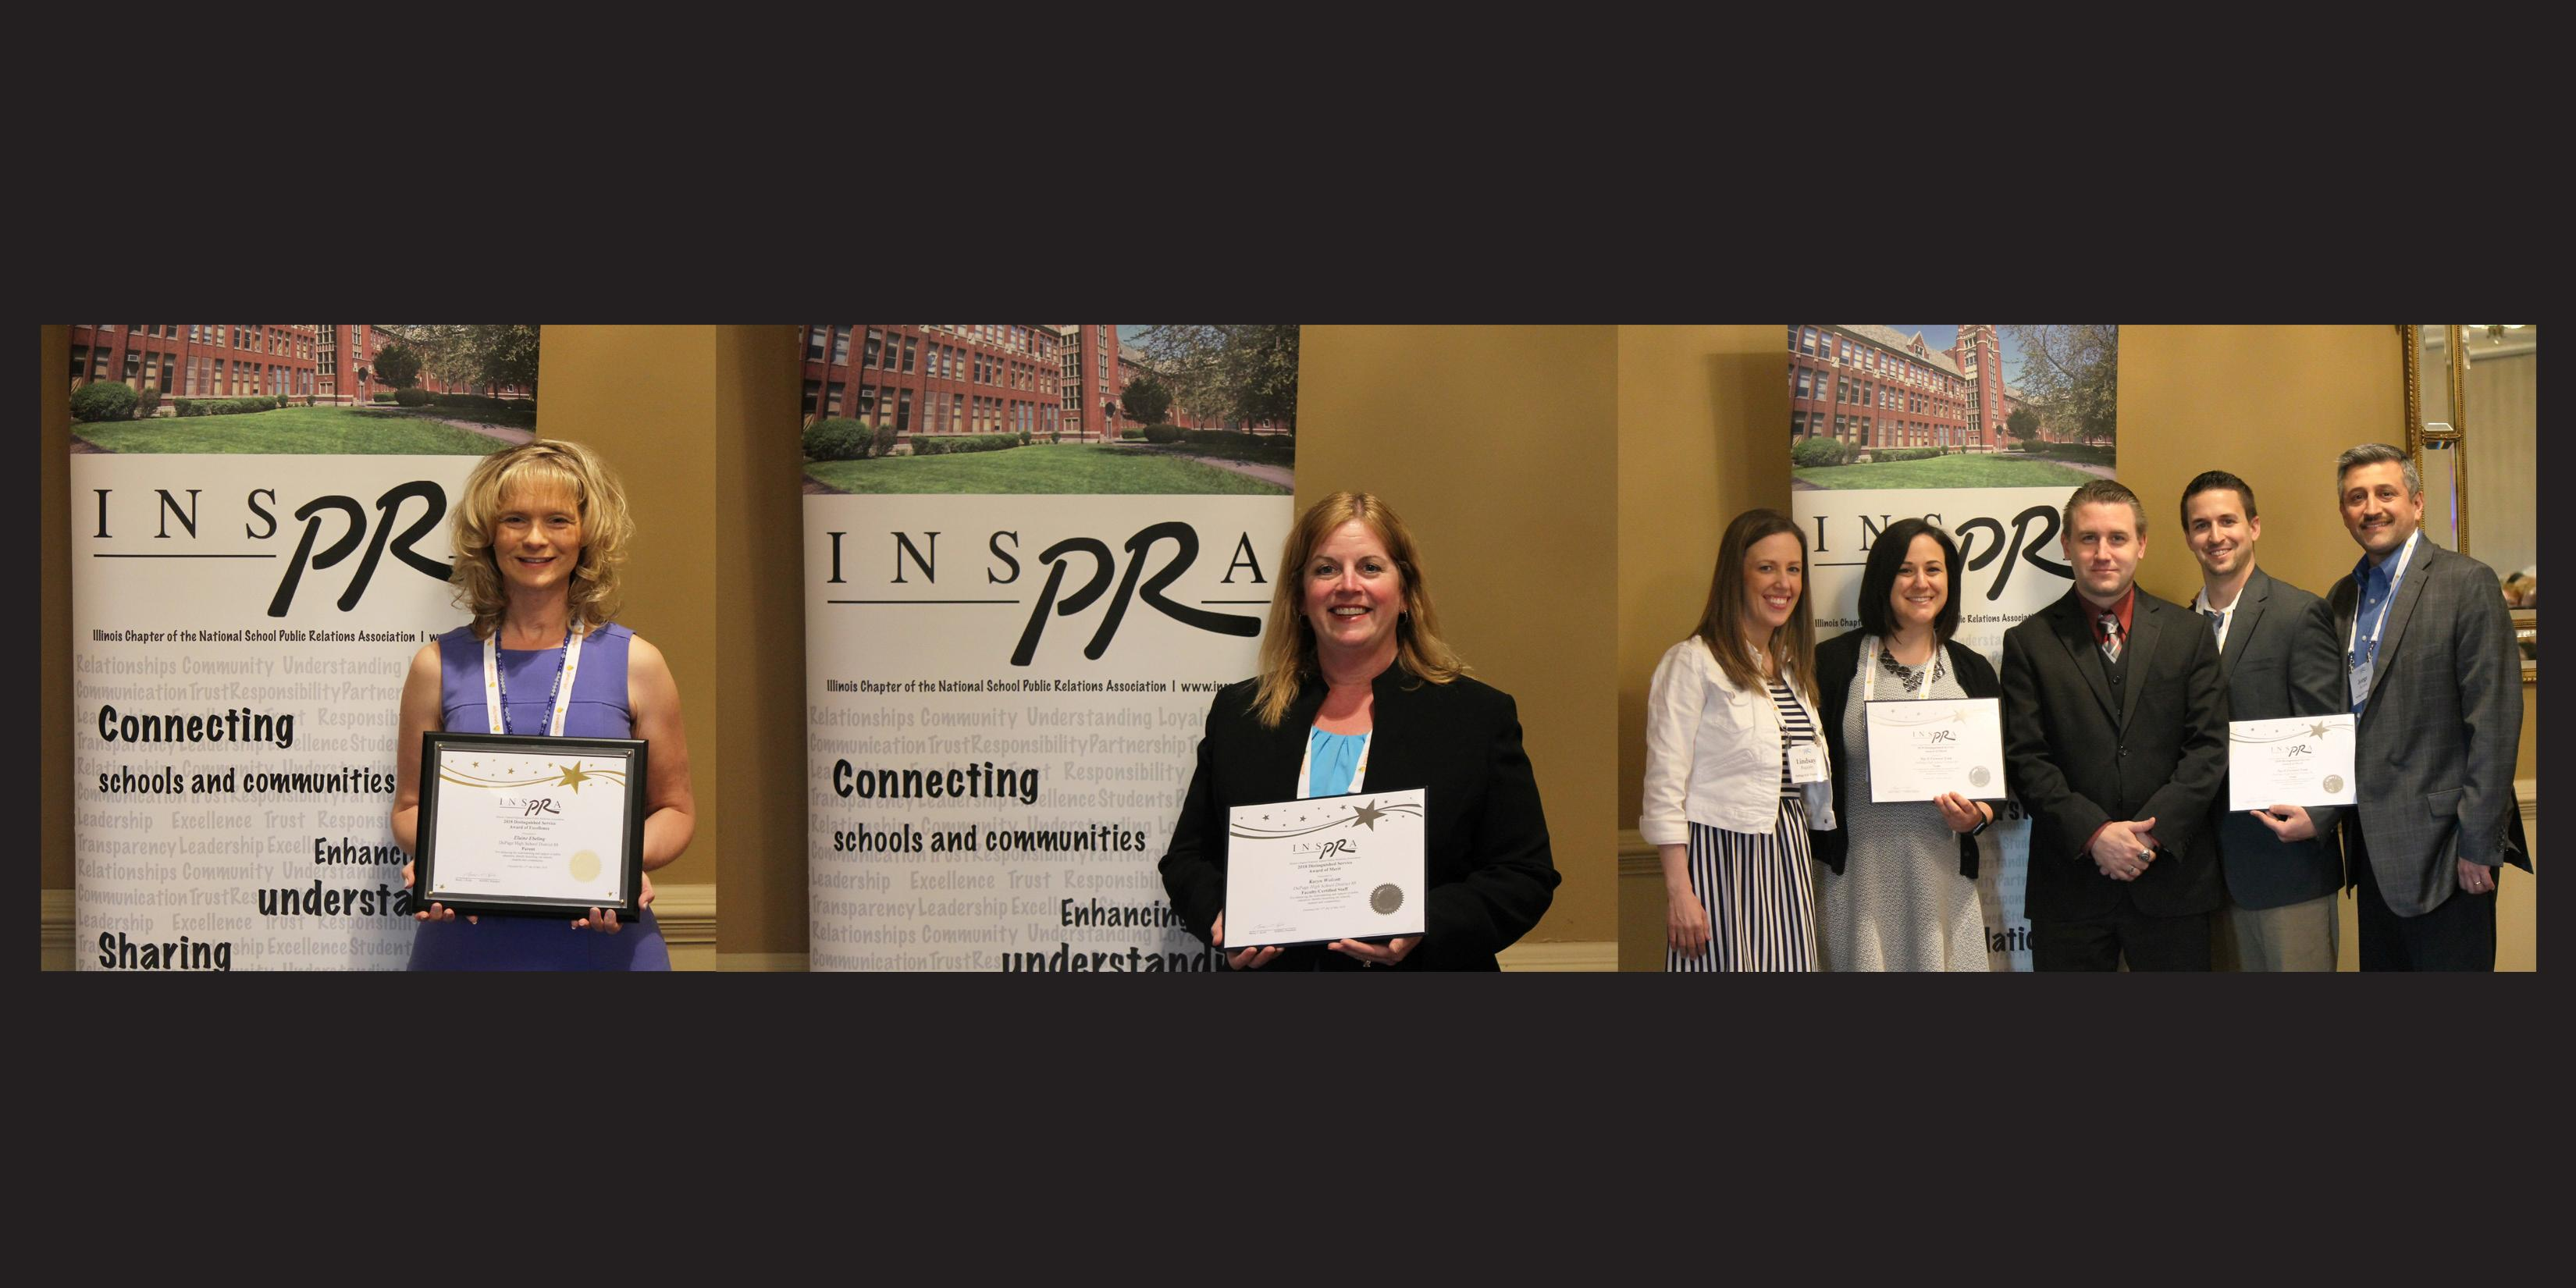 District 88 honored with three state-level INSPRA Distinguished Service Awards